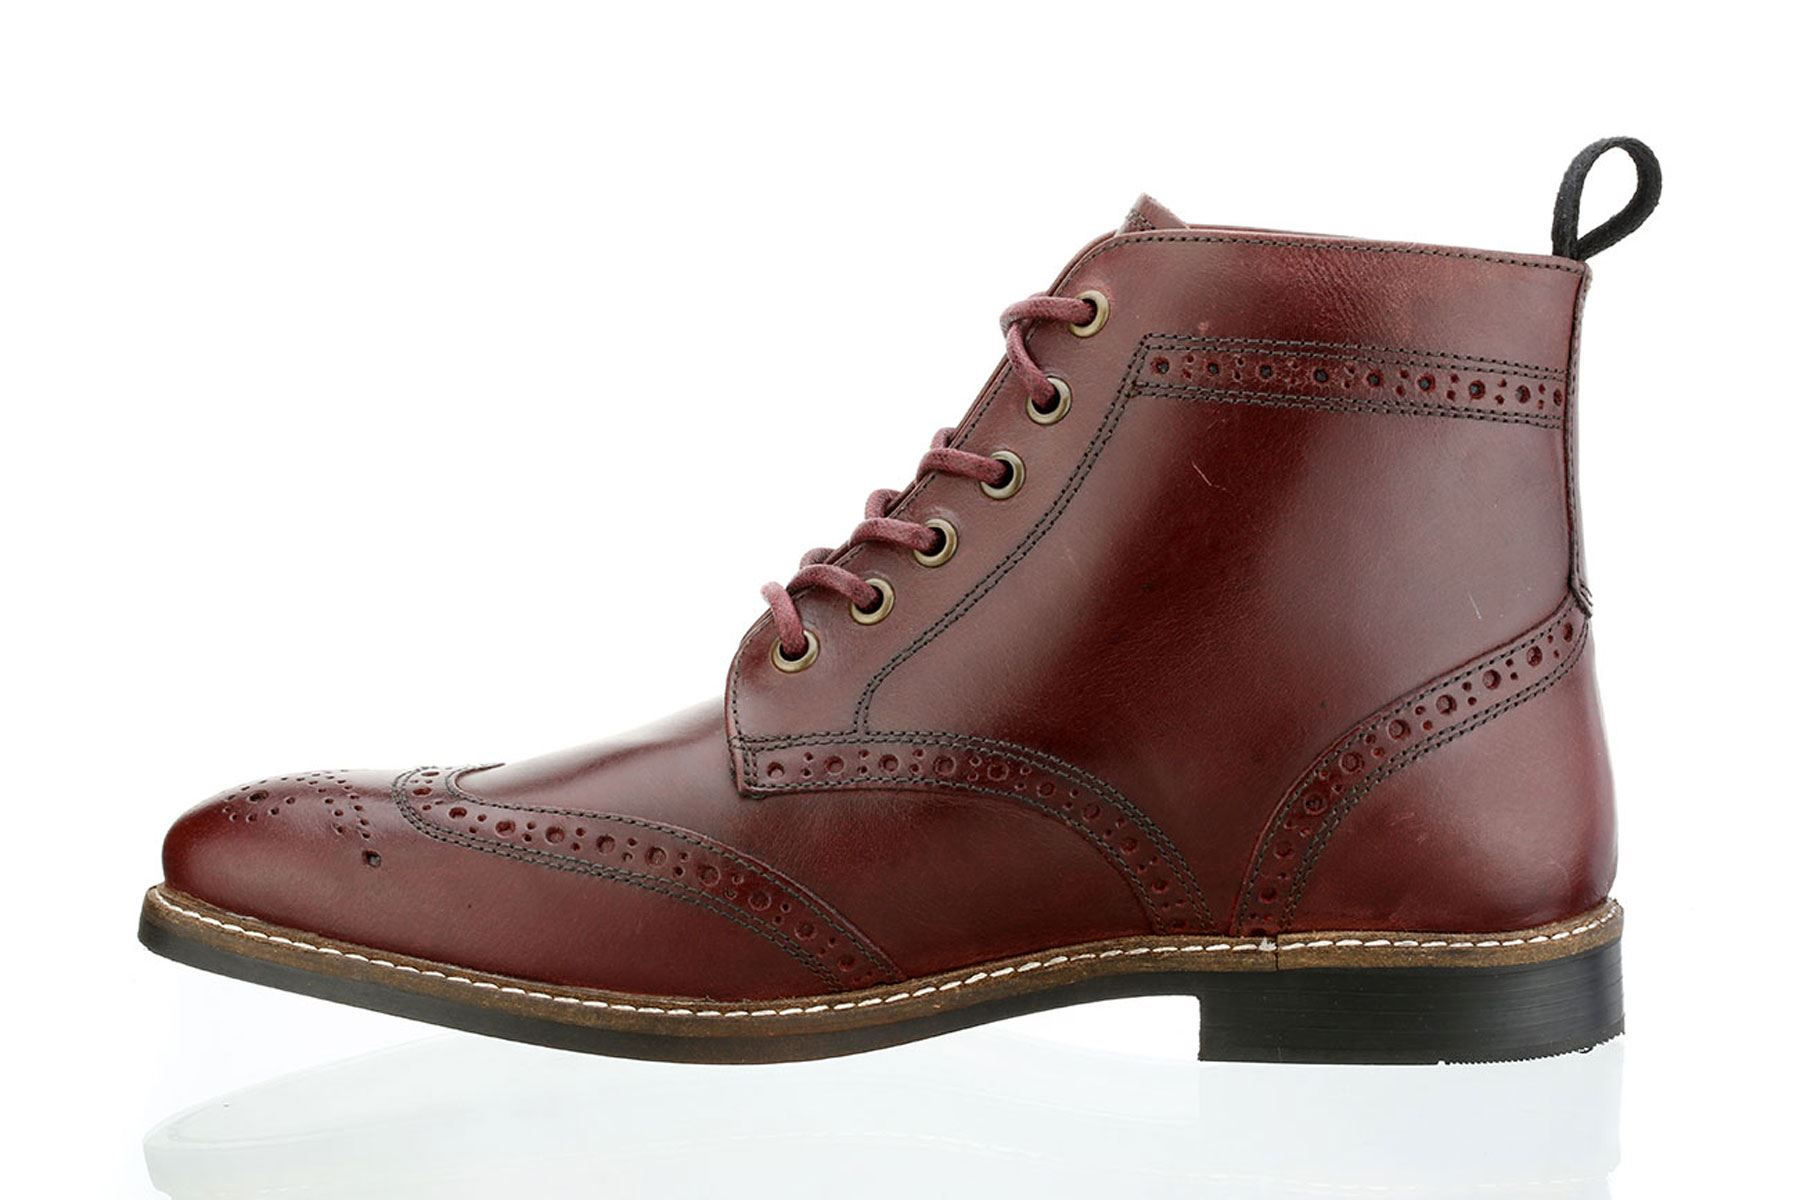 Red Tape Mens Brogue Fashion Round toe Lace Up Leather Burnished Tan ... b1cf5261561